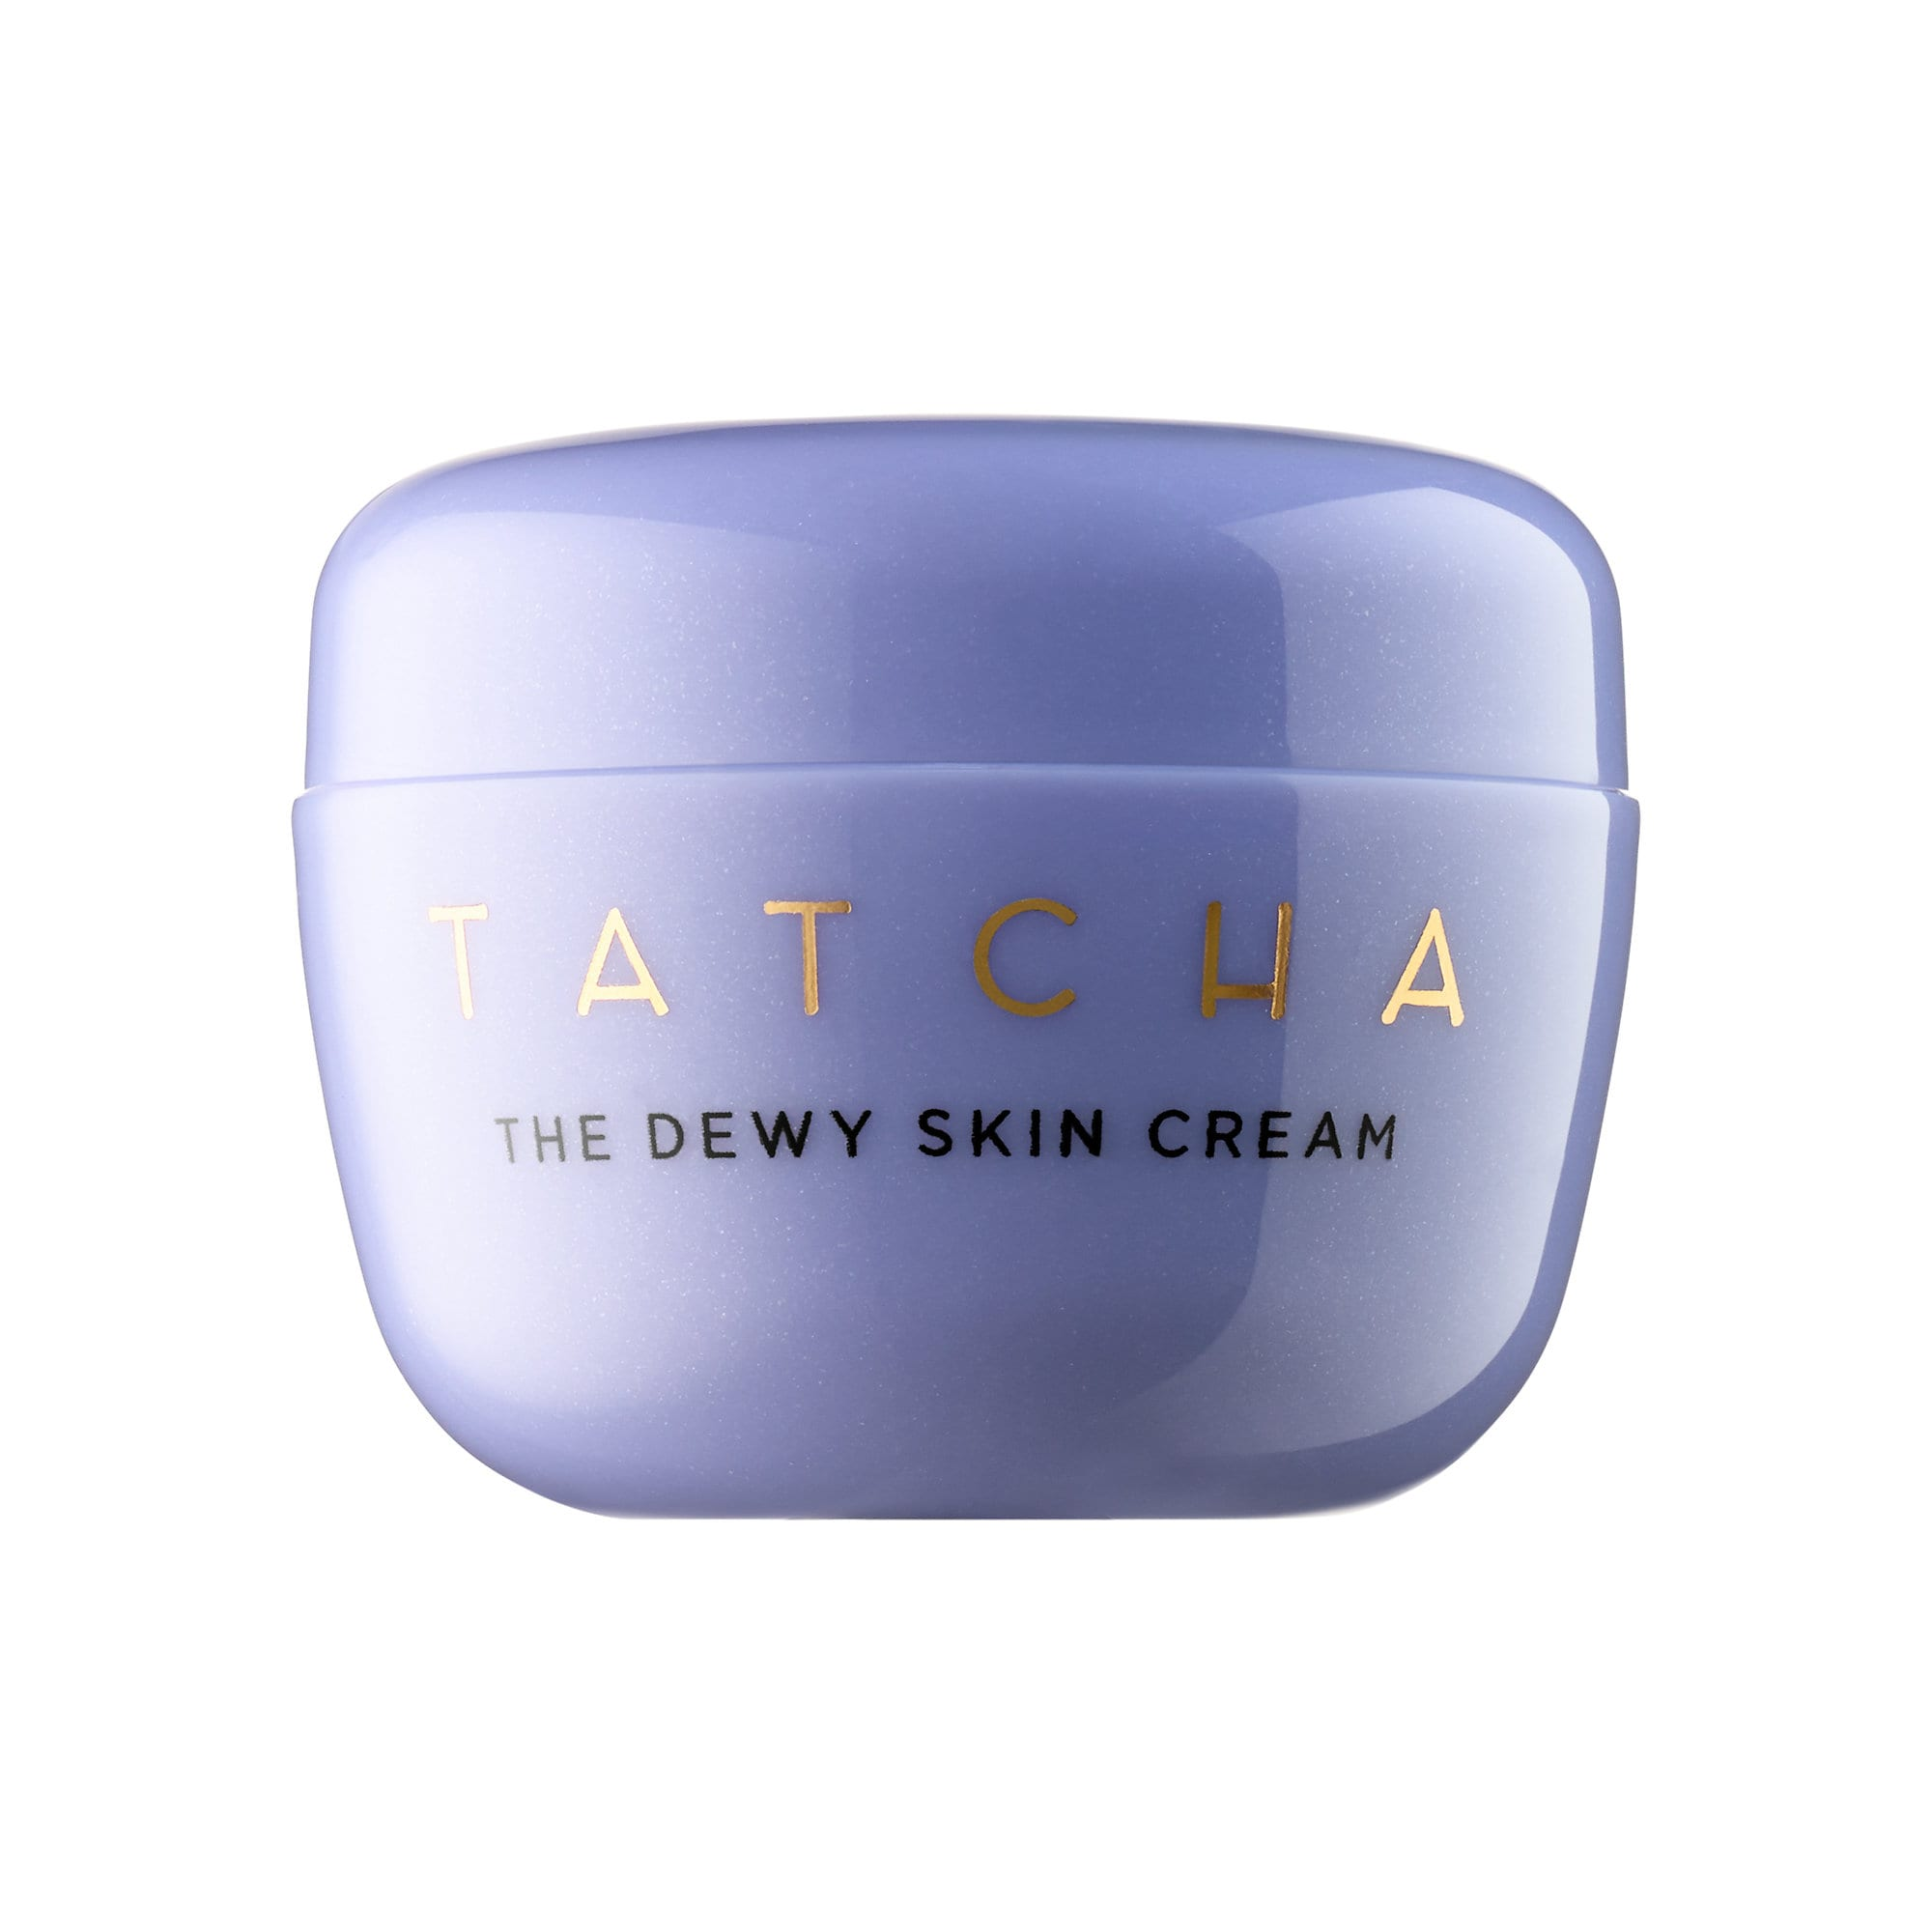 Mini The Dewy Skin Cream TATCHA